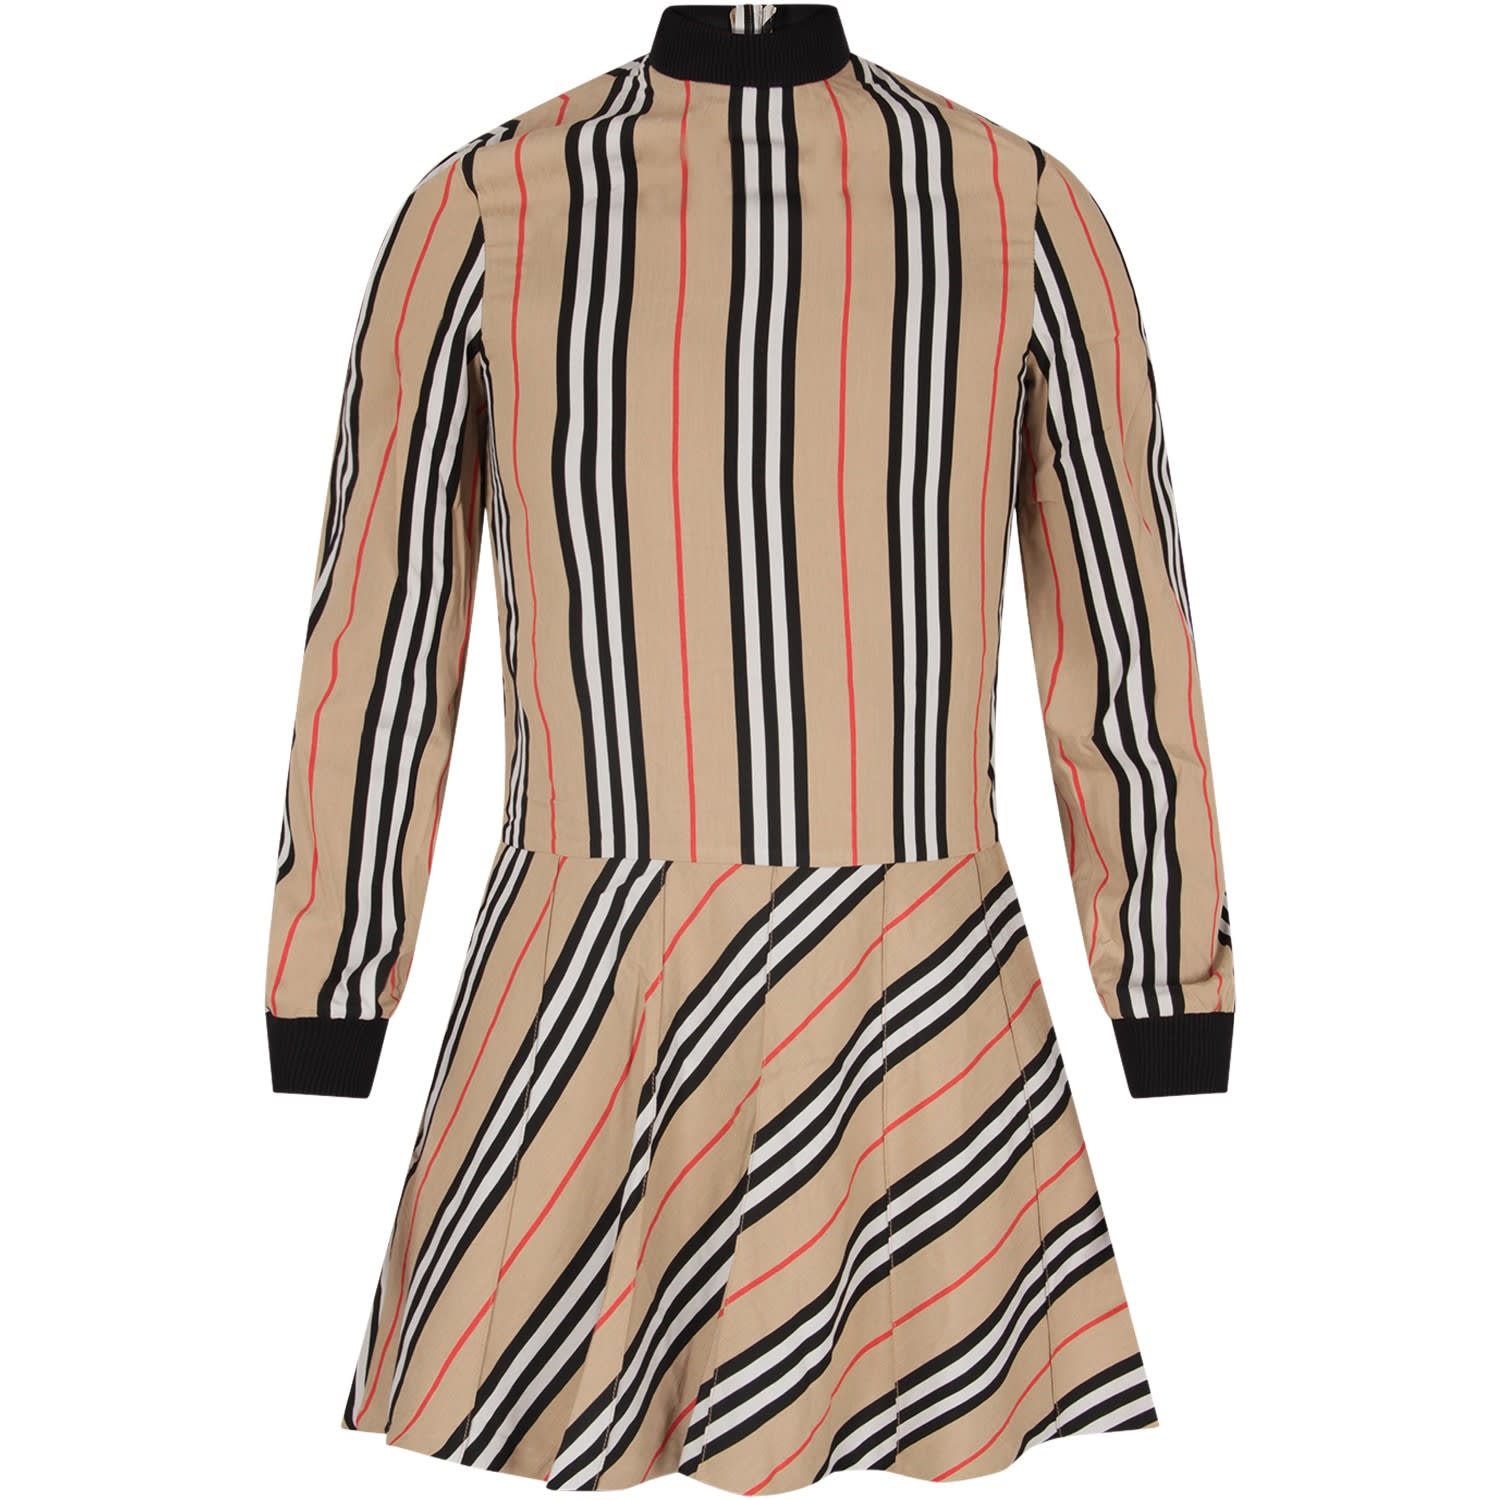 Burberry Beige Girl Dress With Iconic Stripes